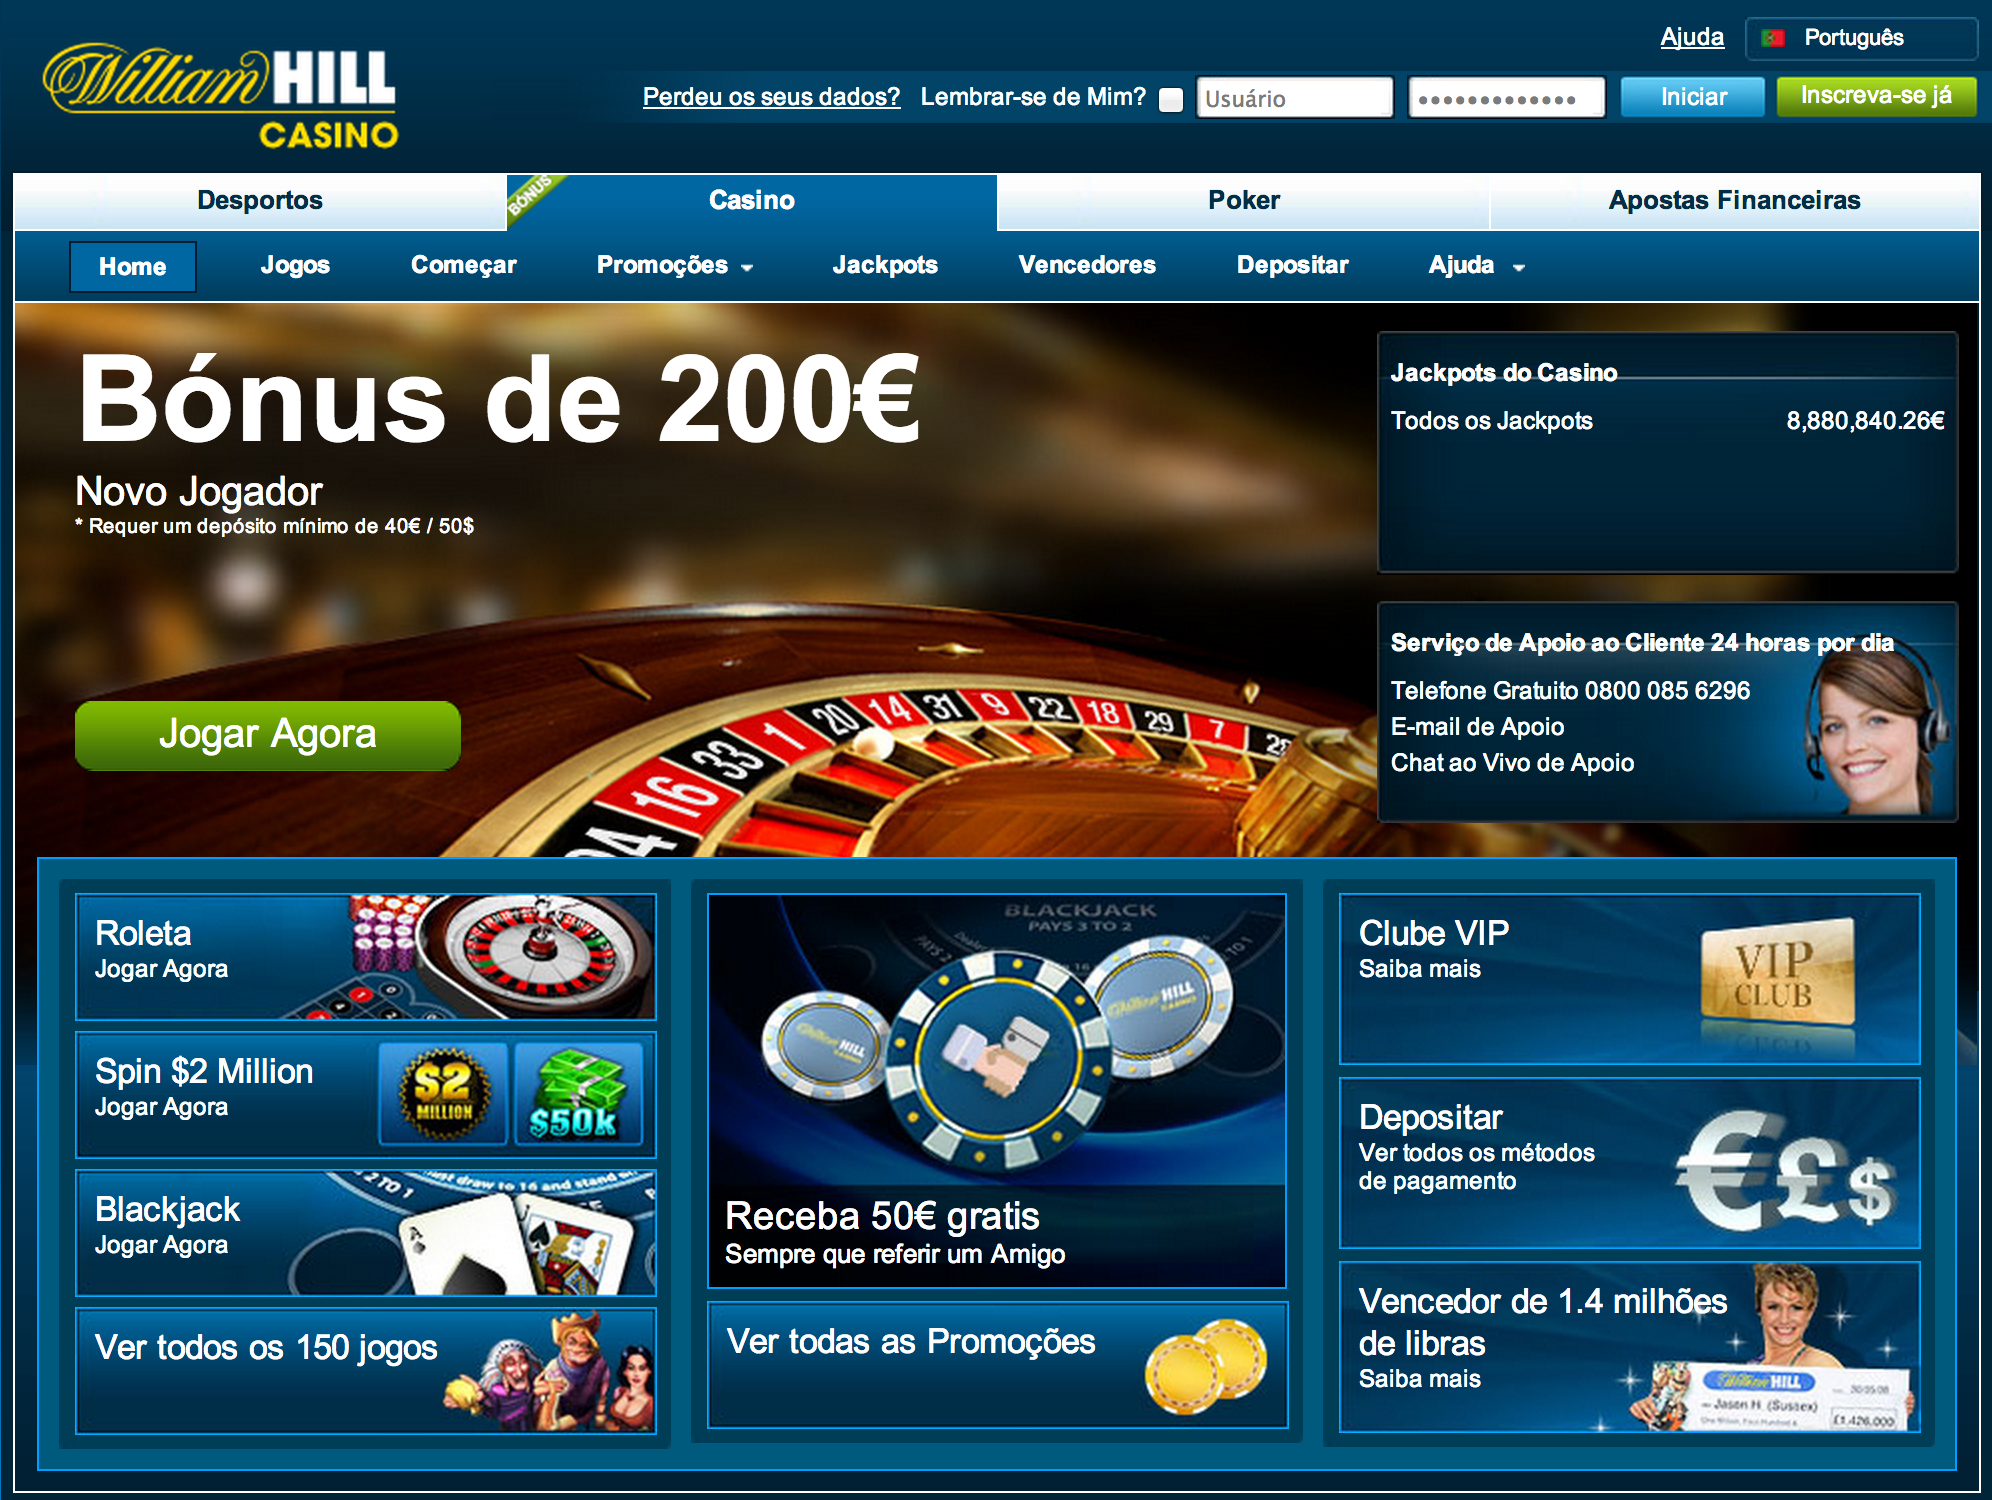 online casino william hill bookofra.de